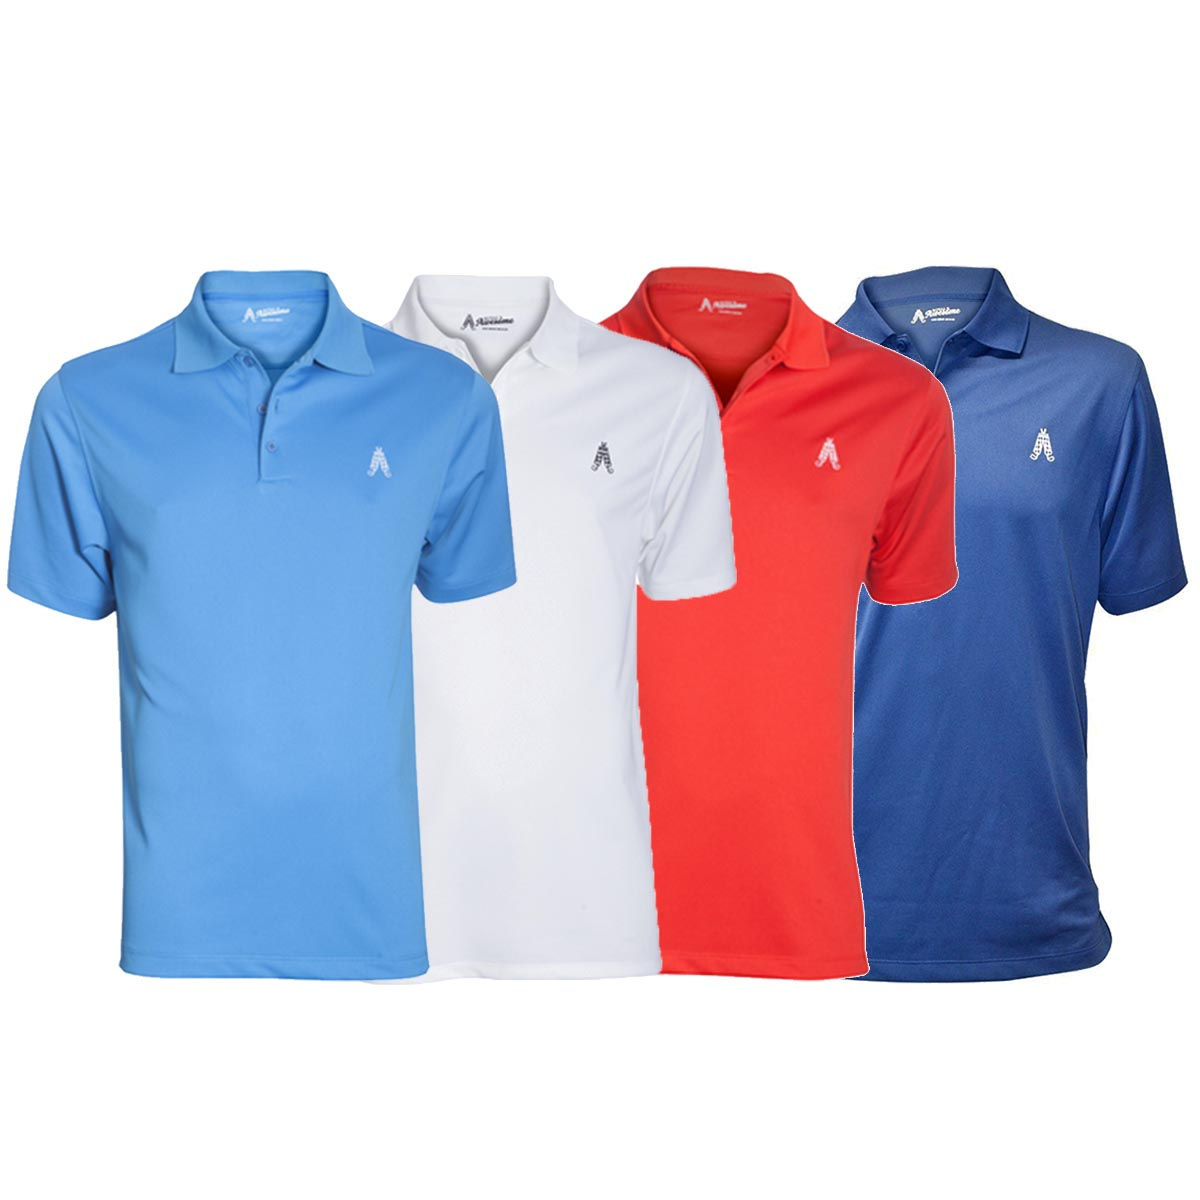 eae80644 Details about SALE Mens Cheap Golf Polo Shirt by Royal and Awesome 4  Colours S - XXL Polos Top